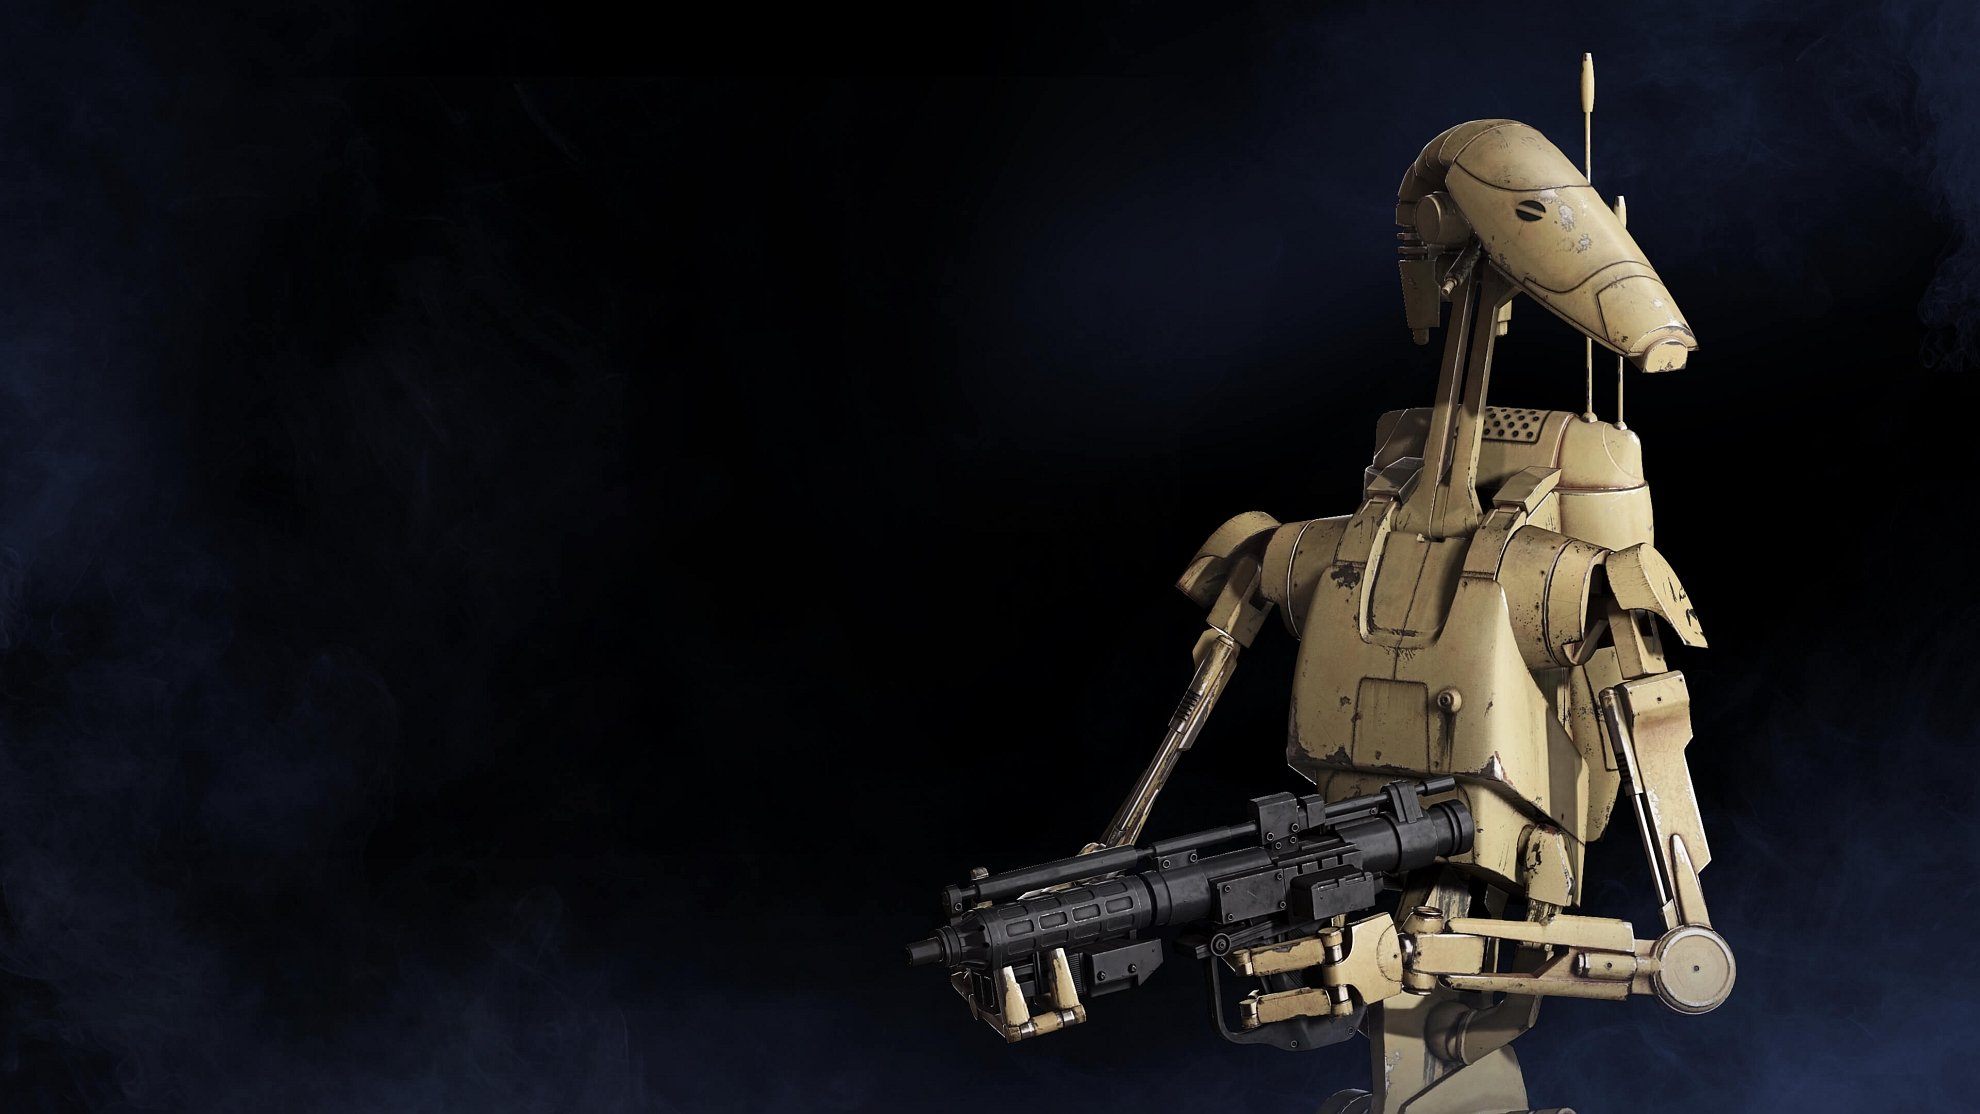 Best Weapons, Guns And Blasters To Use In Star Wars ... - photo#33